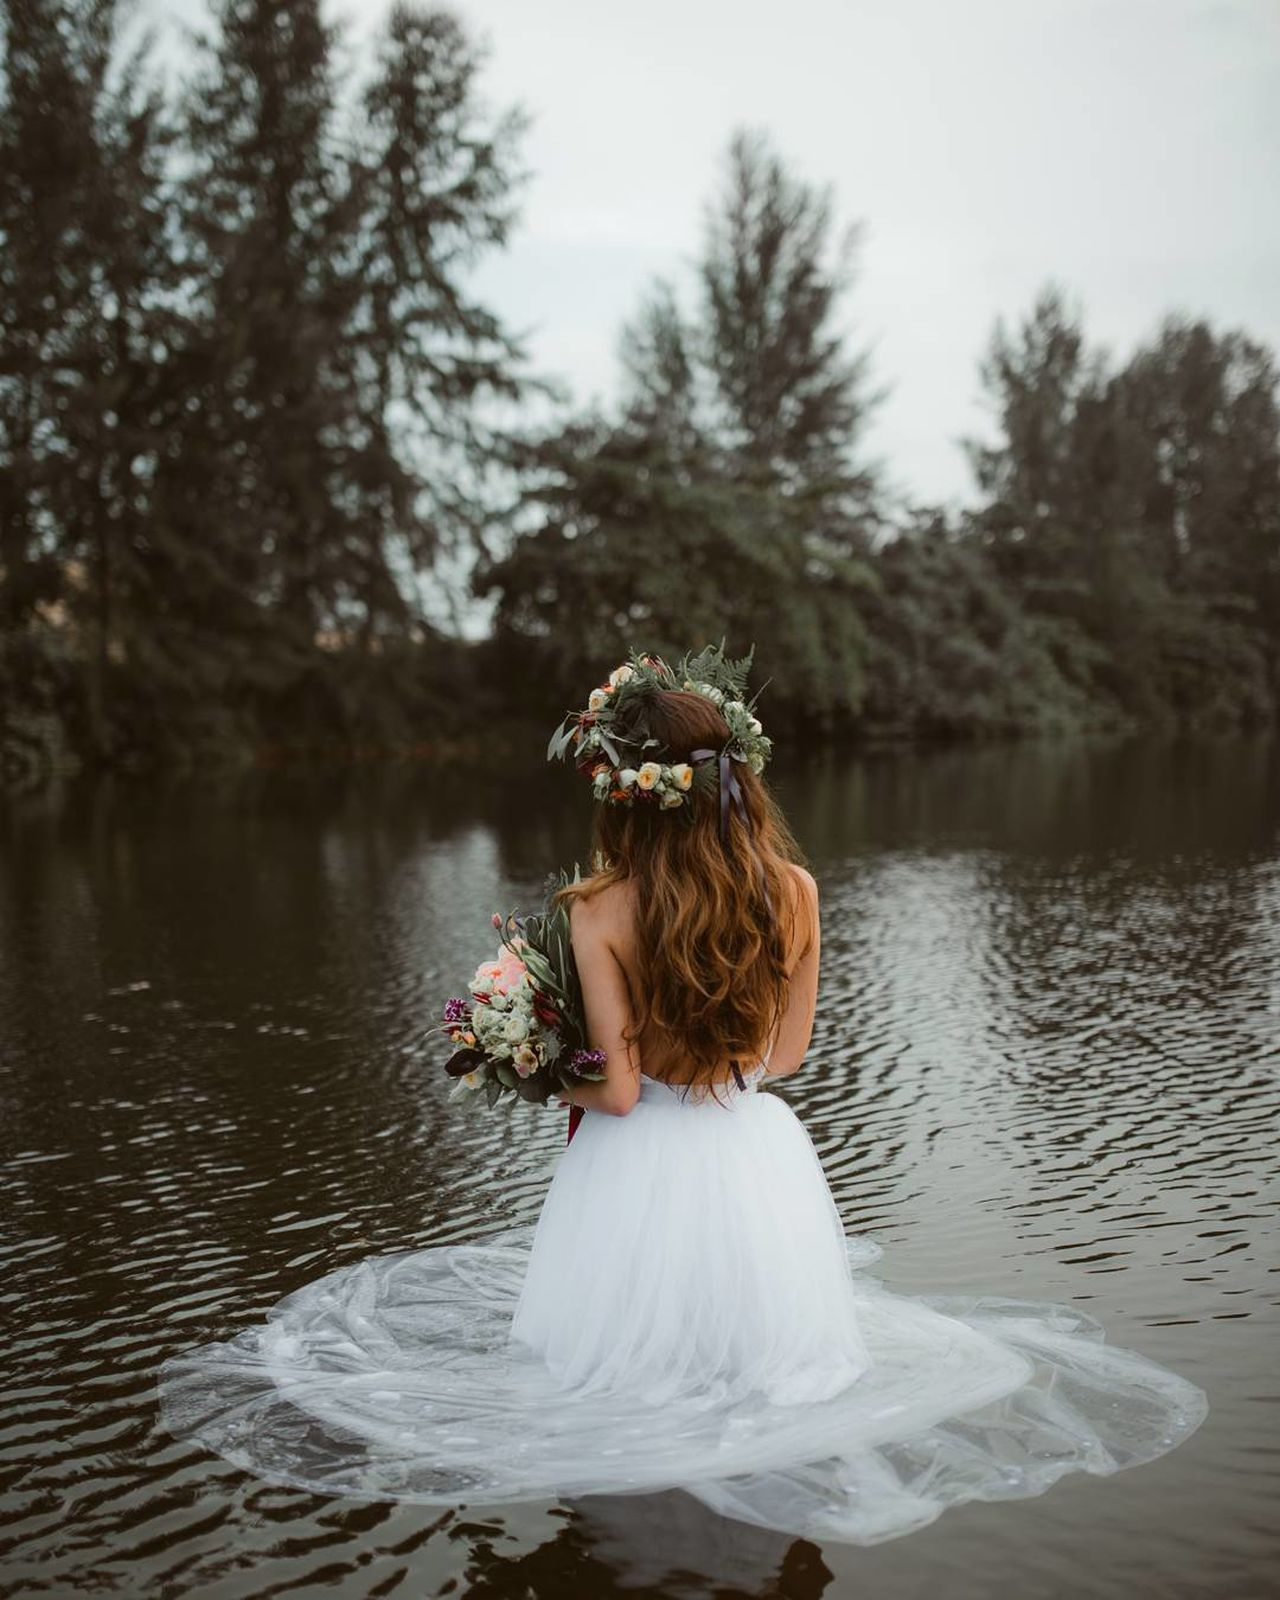 elf in an irish wood Tranquility Water One Young Woman Only Outdoors Forest Nature Lake Place Of Heart Light And Shadow Dreamlike Women Around The World Portrait Photography Beautiful People The Portraitist - 2017 EyeEm Awards Portrait Of A Woman The Great Outdoors - 2017 EyeEm Awards Woods Beauty In Nature